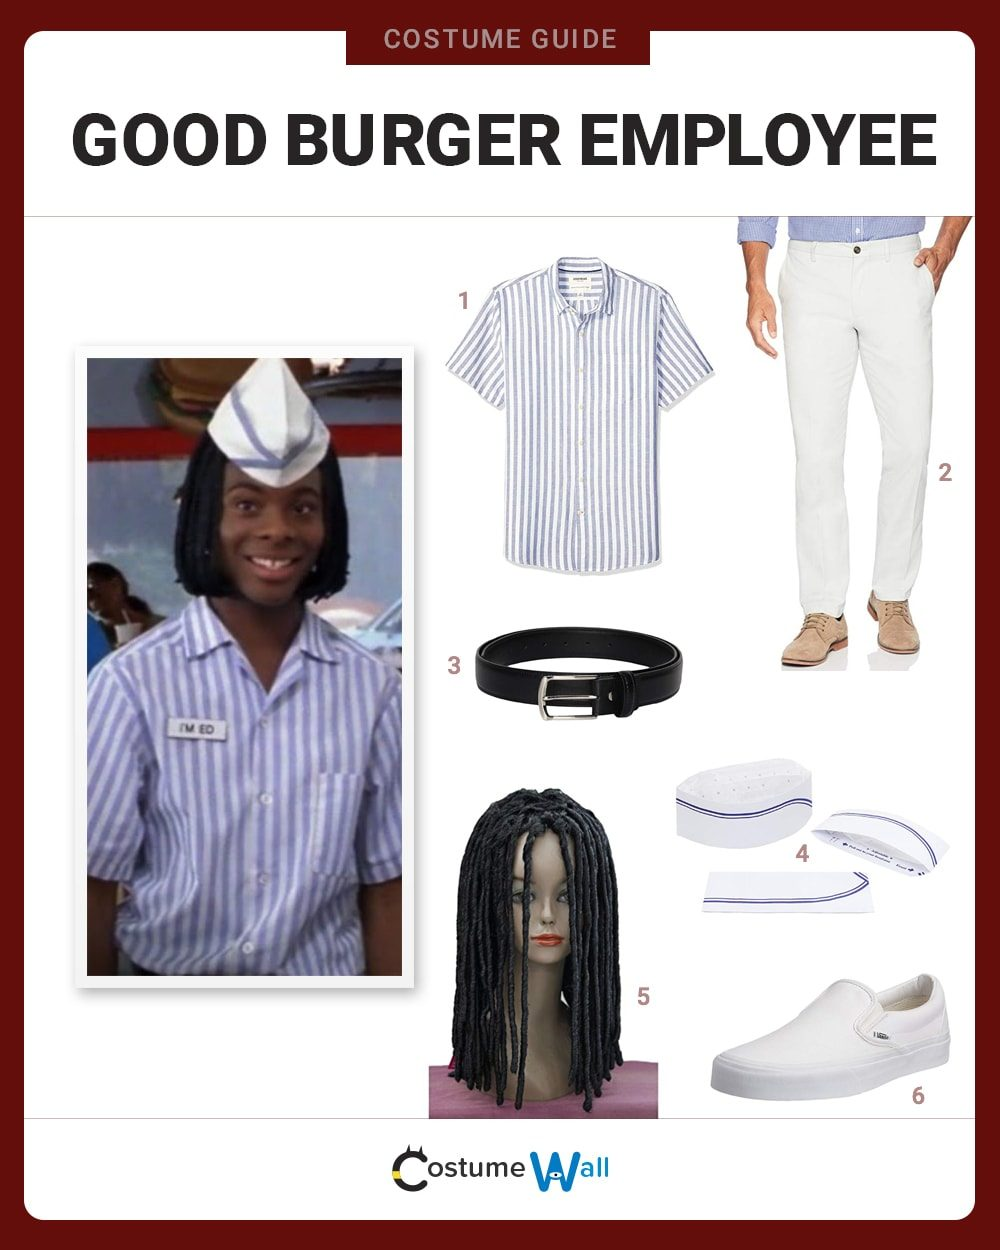 Good Burger Employee Costume Guide